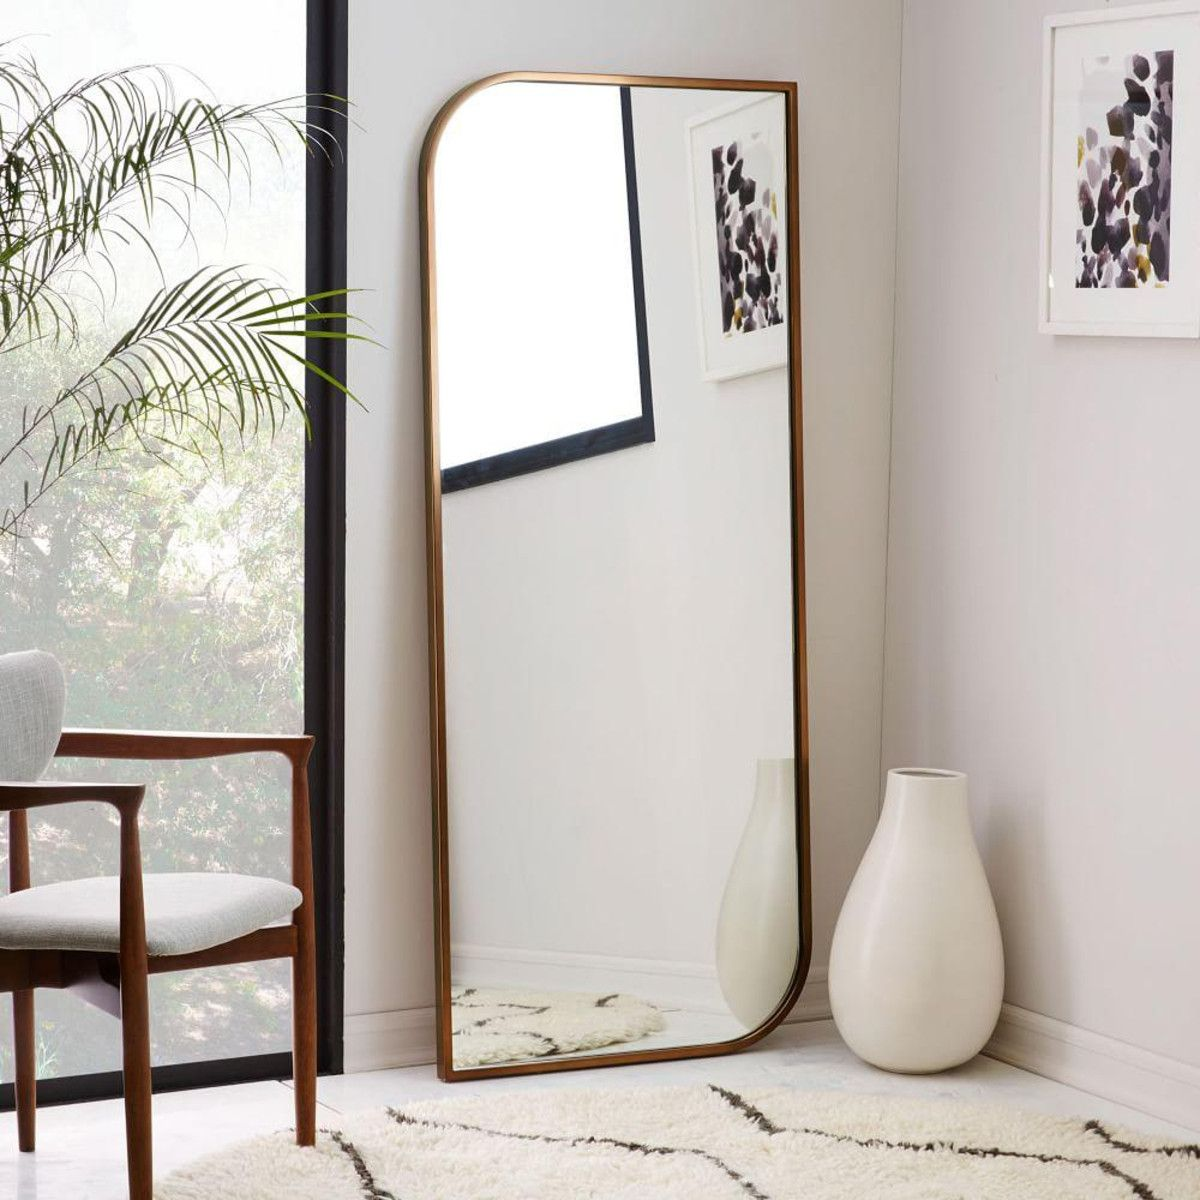 cheap large lots wall blanket luxury with design good mirrors full lamp table oversized wood length size lights decoration mirror bronze designs rectangular floor walmart extra floors diy big ideas bedroom books interior gold arrangement of